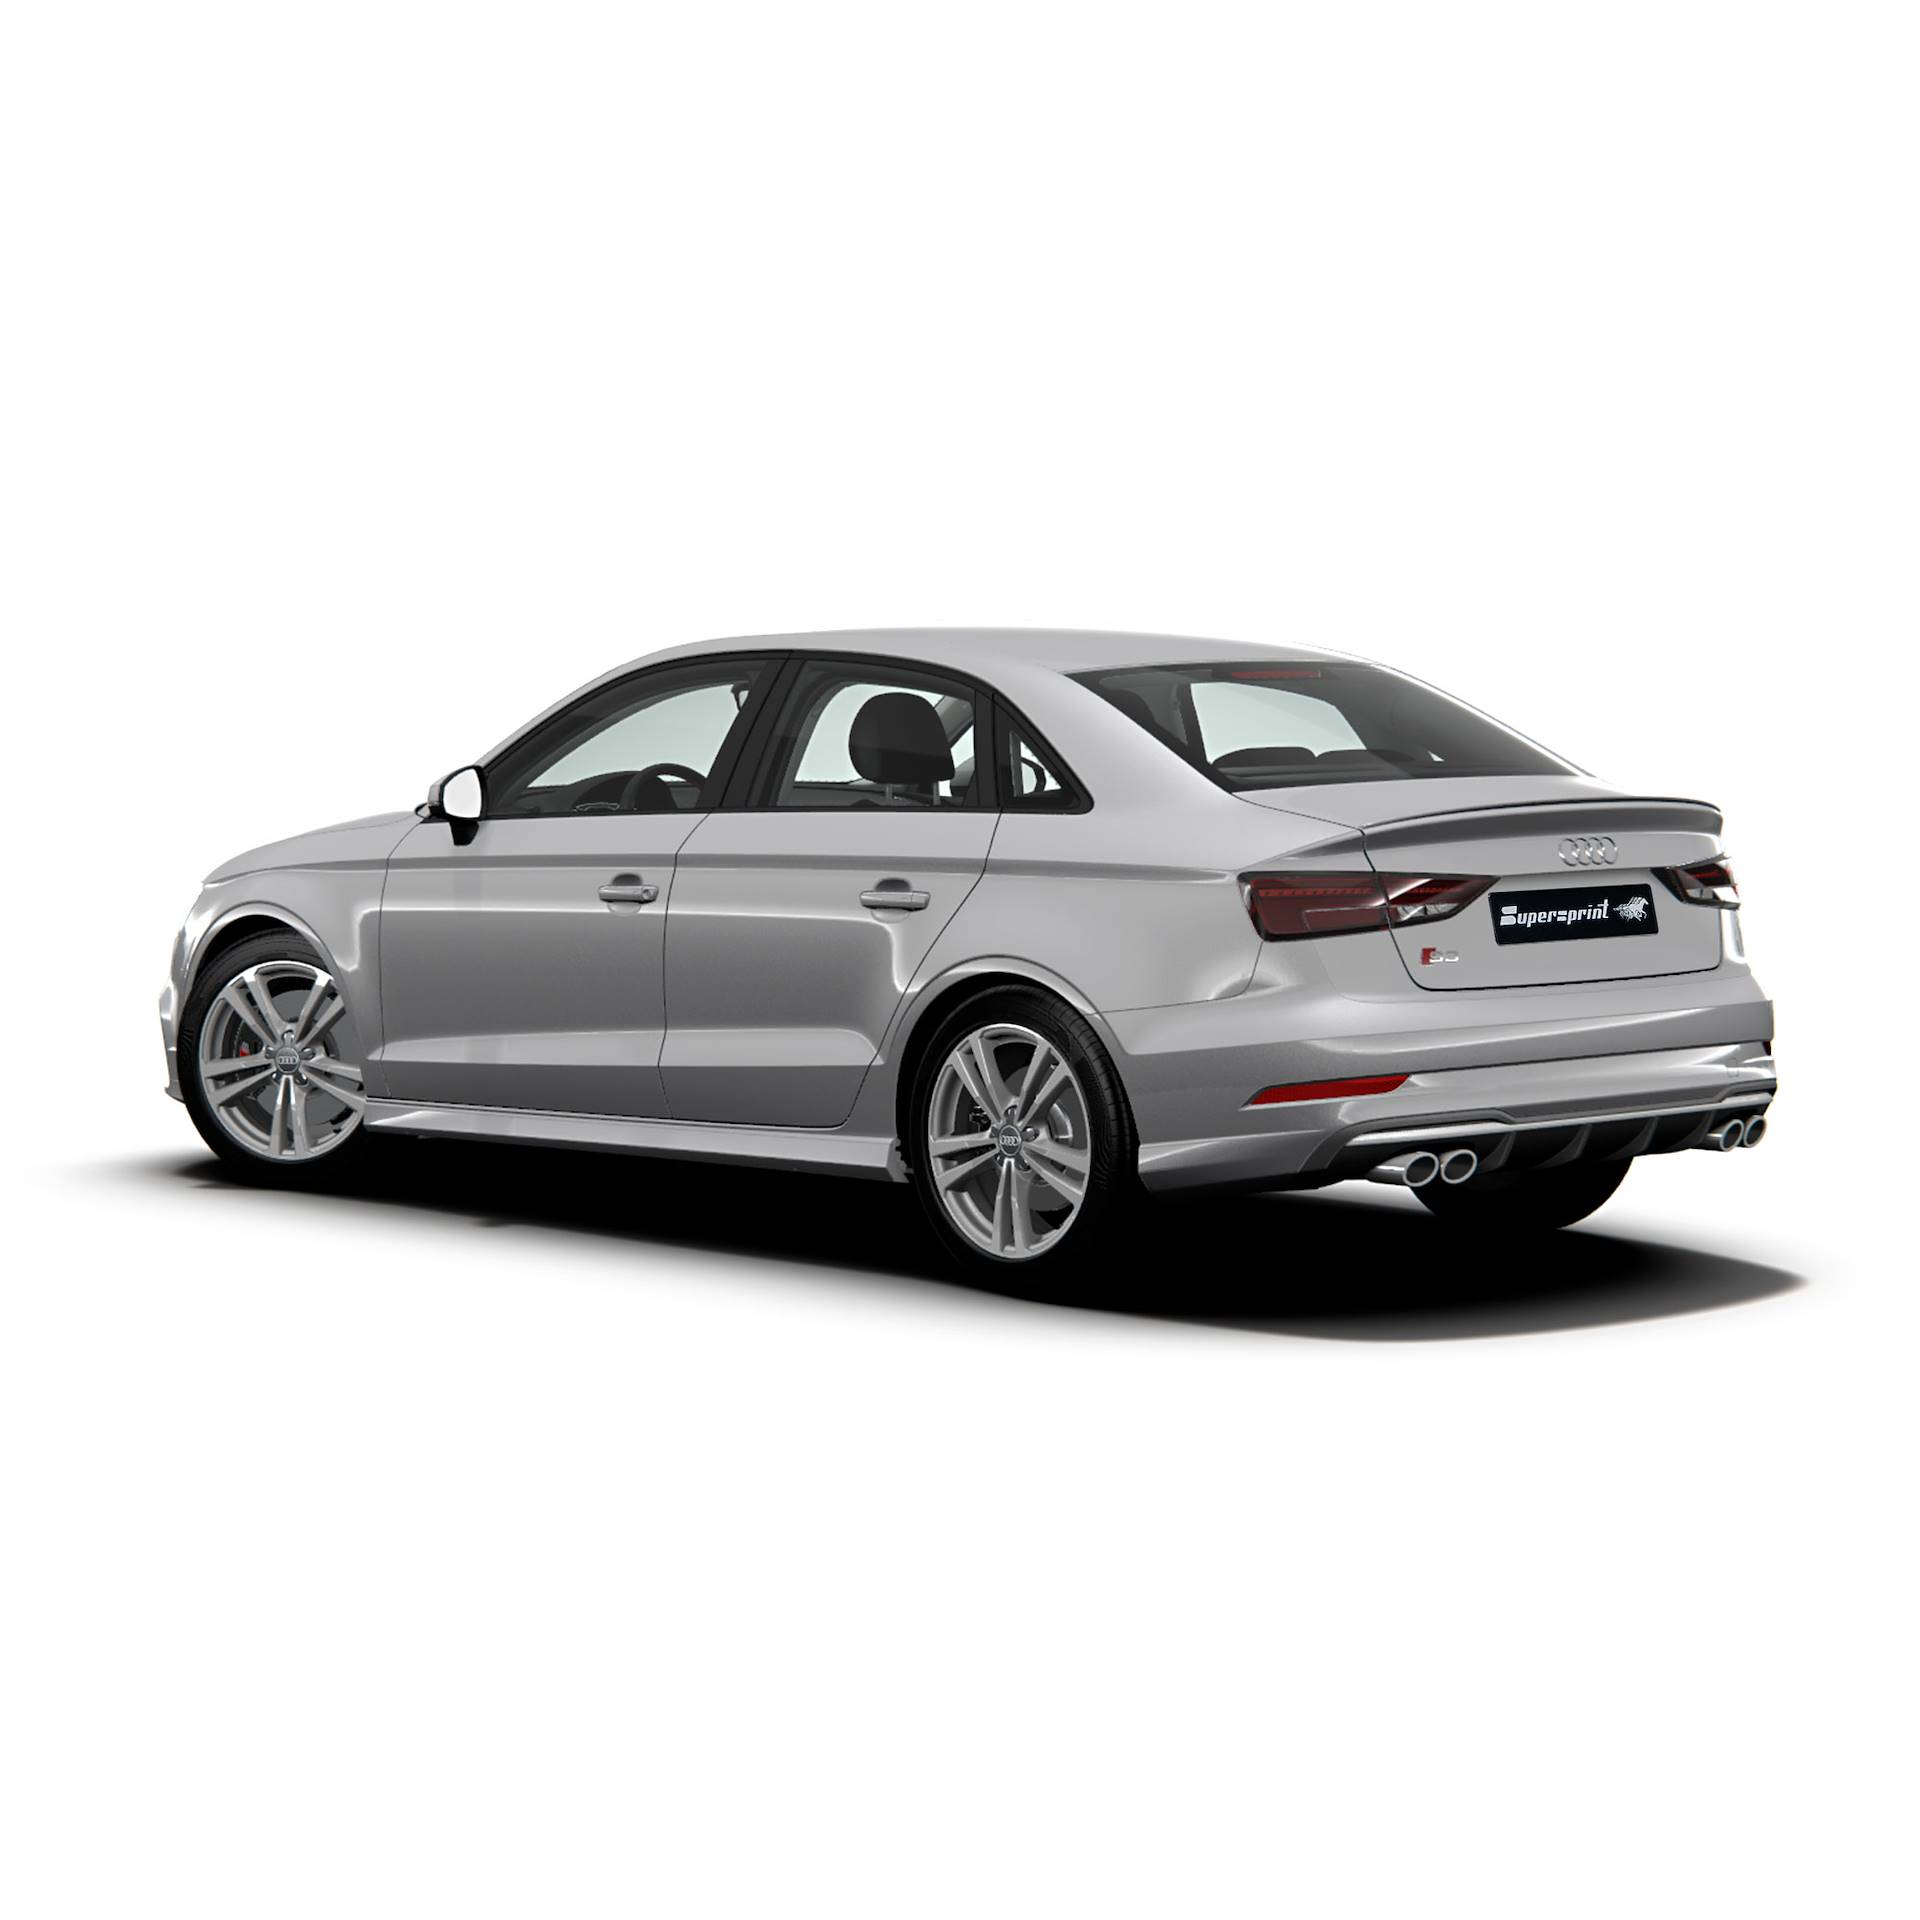 Performance Sport Exhaust For Audi S3 8v Sedan Quattro With Valves Audi S3 8v Sedan Quattro 2 0 Tfsi 300 Hp Models With Gpf 2019 Audi S Rs Exhaust Systems